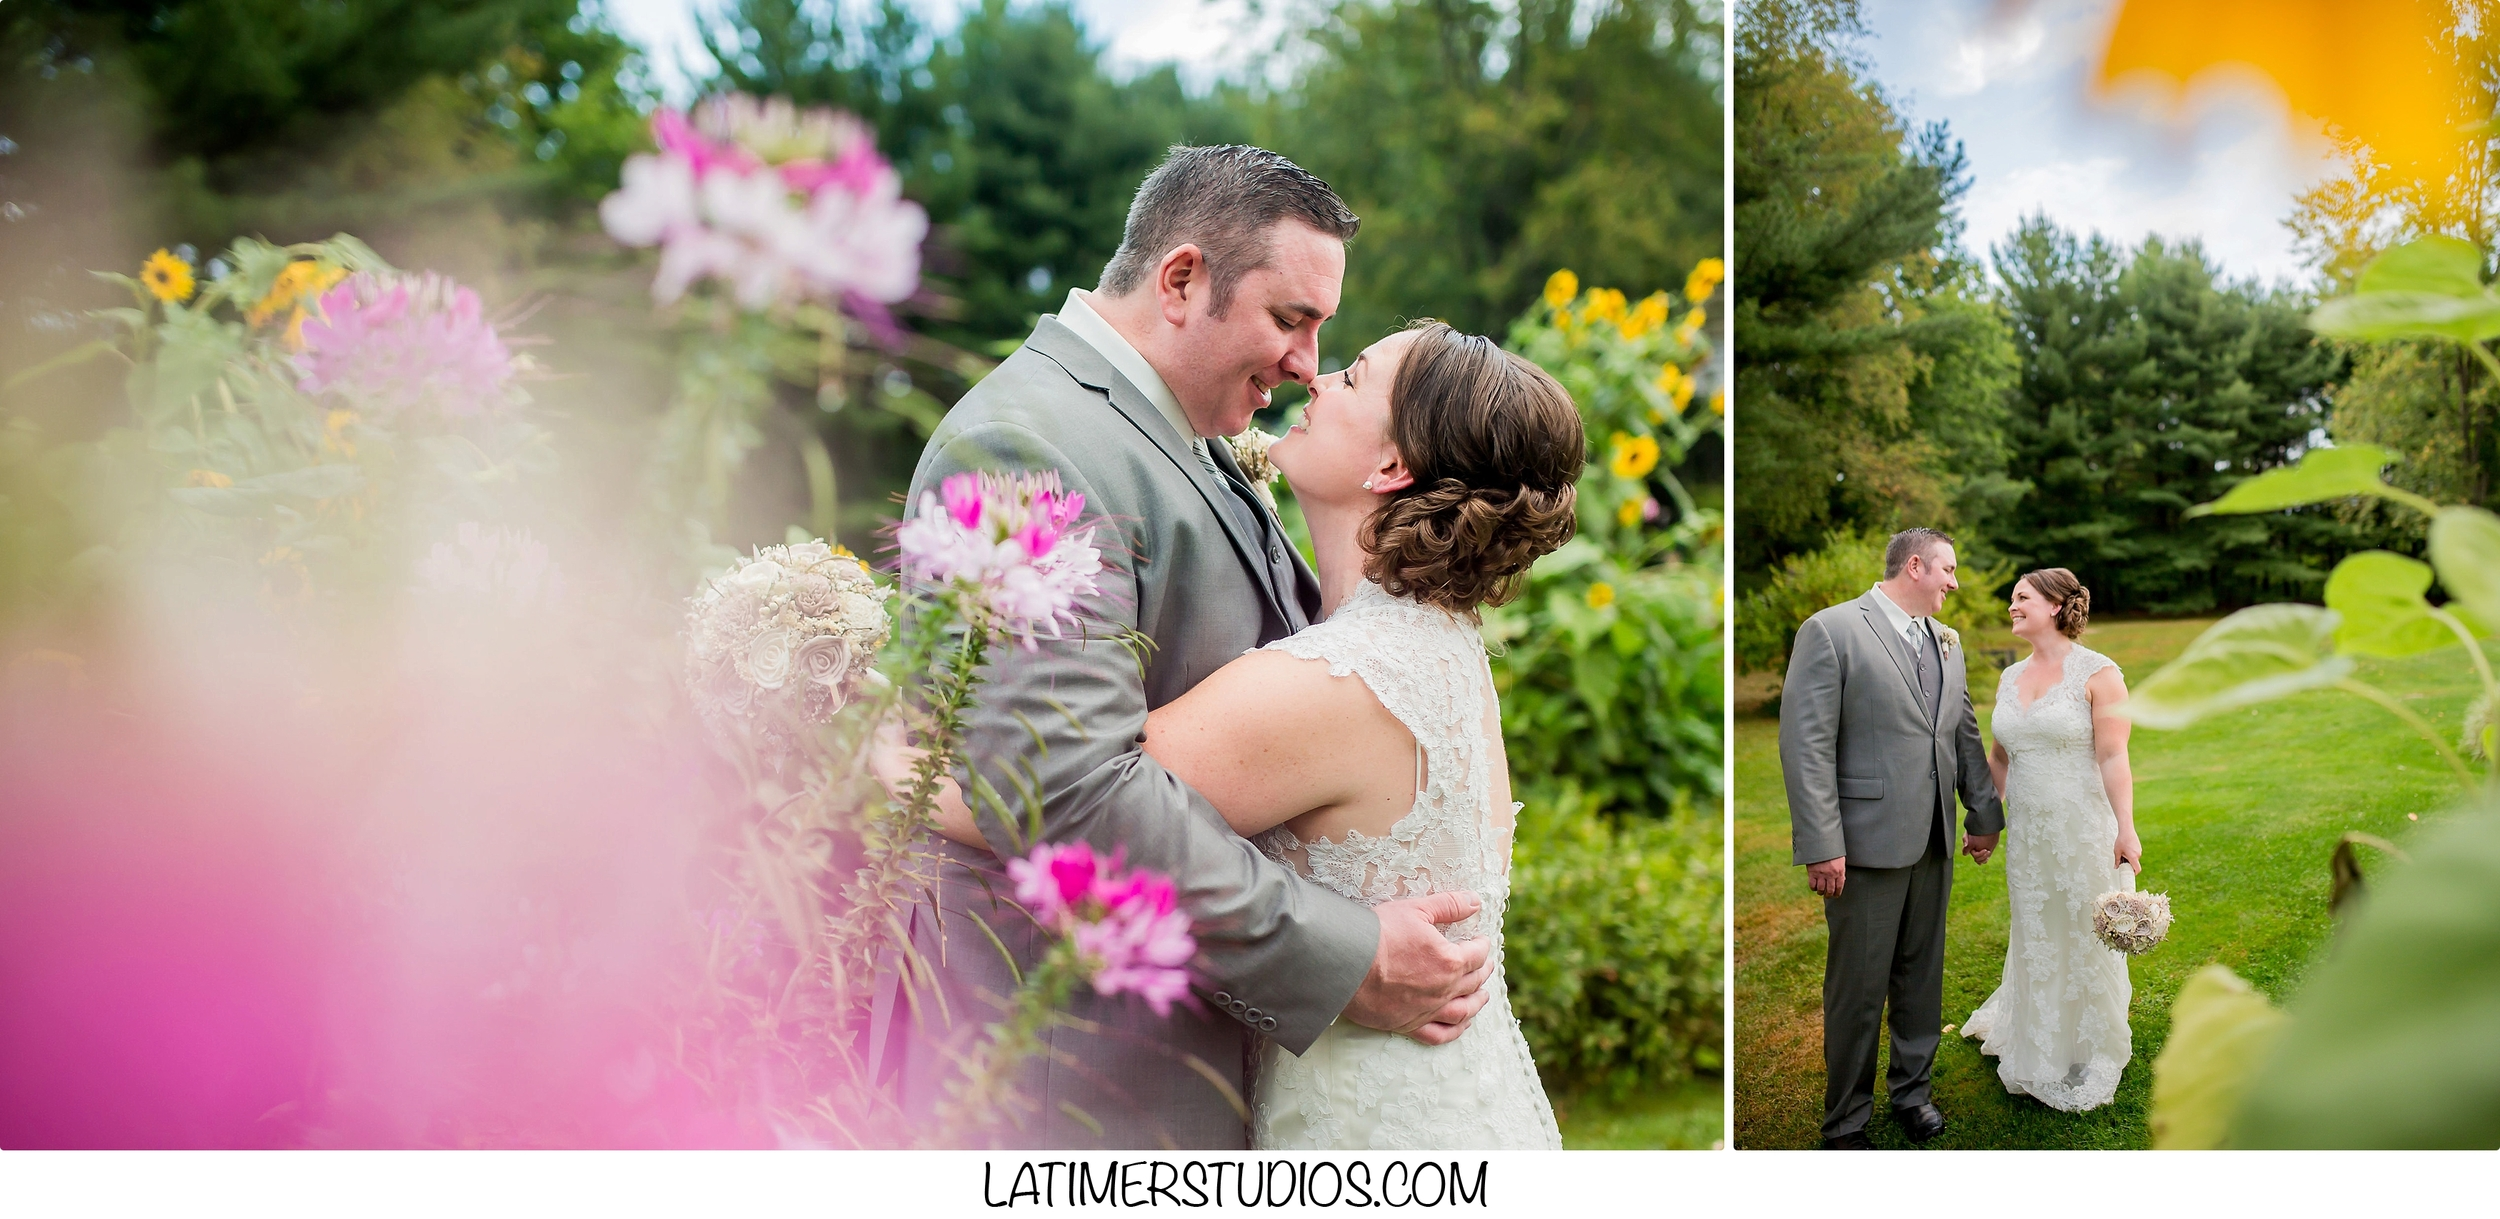 Latimer Studios Photography capturing  a bride and groom at a wedding at Mile Away Restaurant in Milford NH